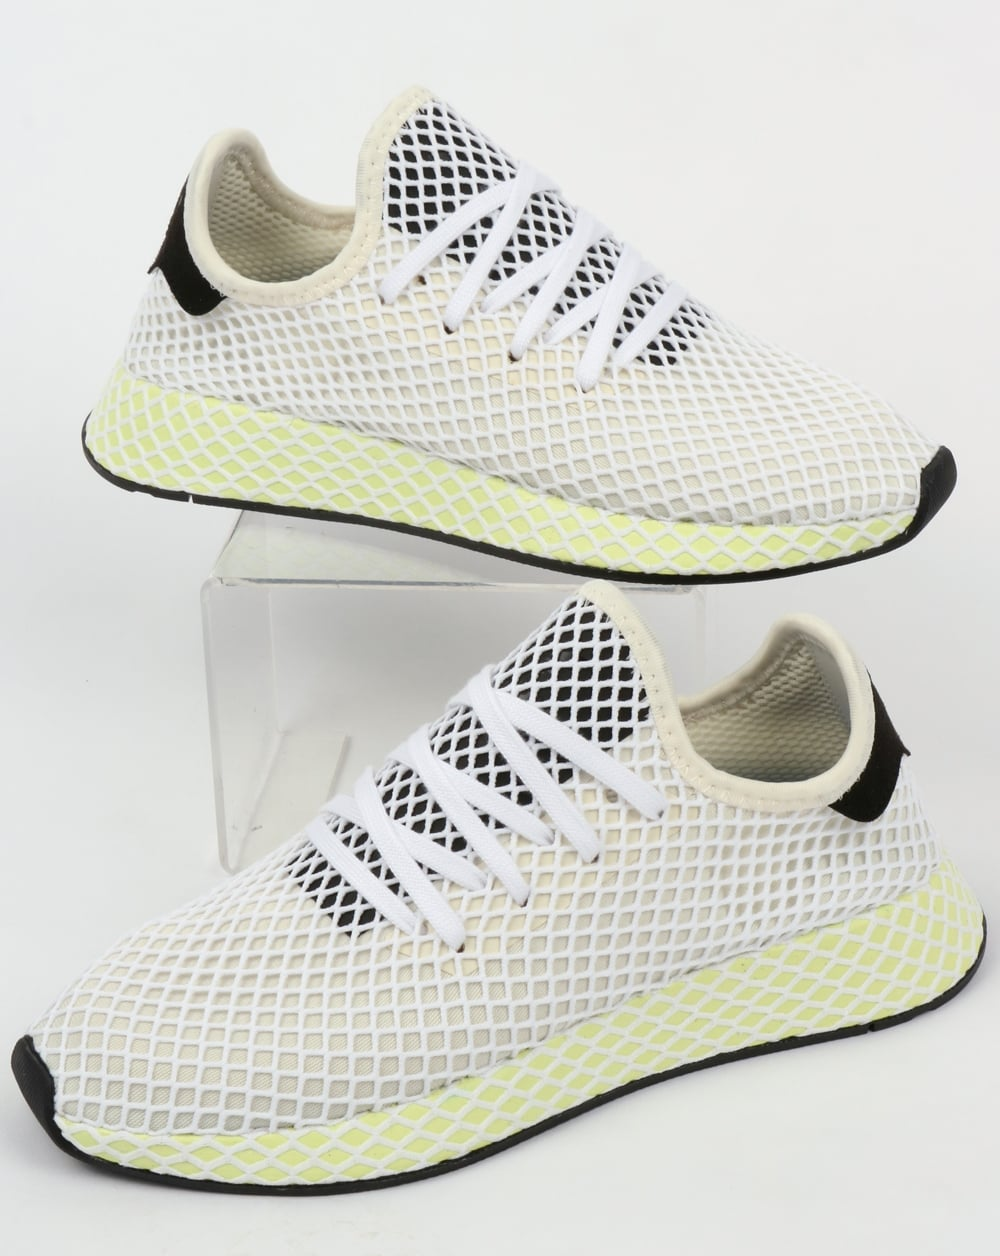 adidas Deerupt Runner Trainers In White And Yellow Outlet Shop Buy Cheap Websites Buy Cheap Good Selling g9jyX1uu